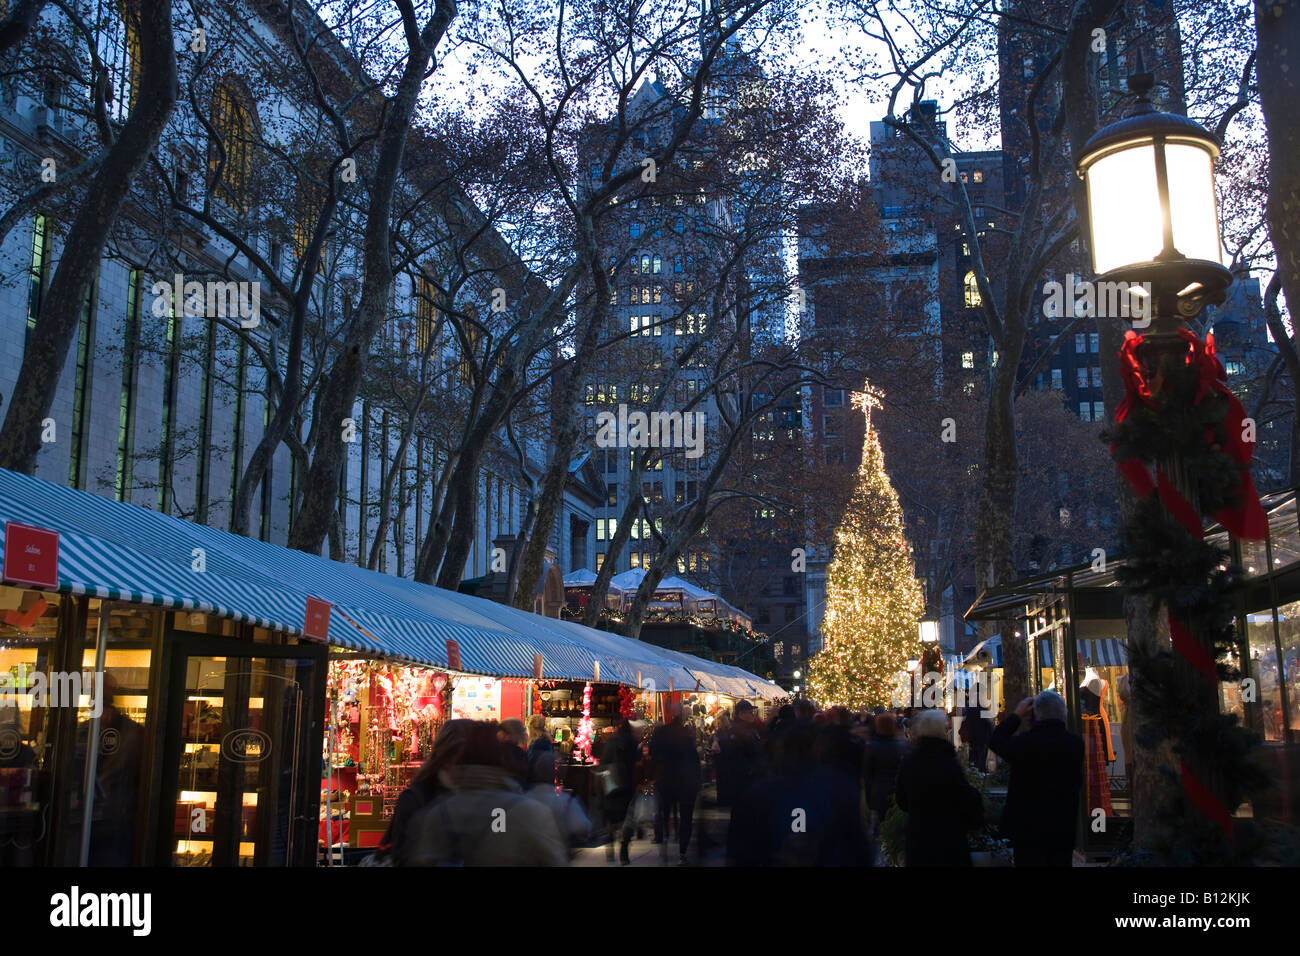 Christmas Market New York City.Christmas Market Bryant Park Manhattan New York City Usa